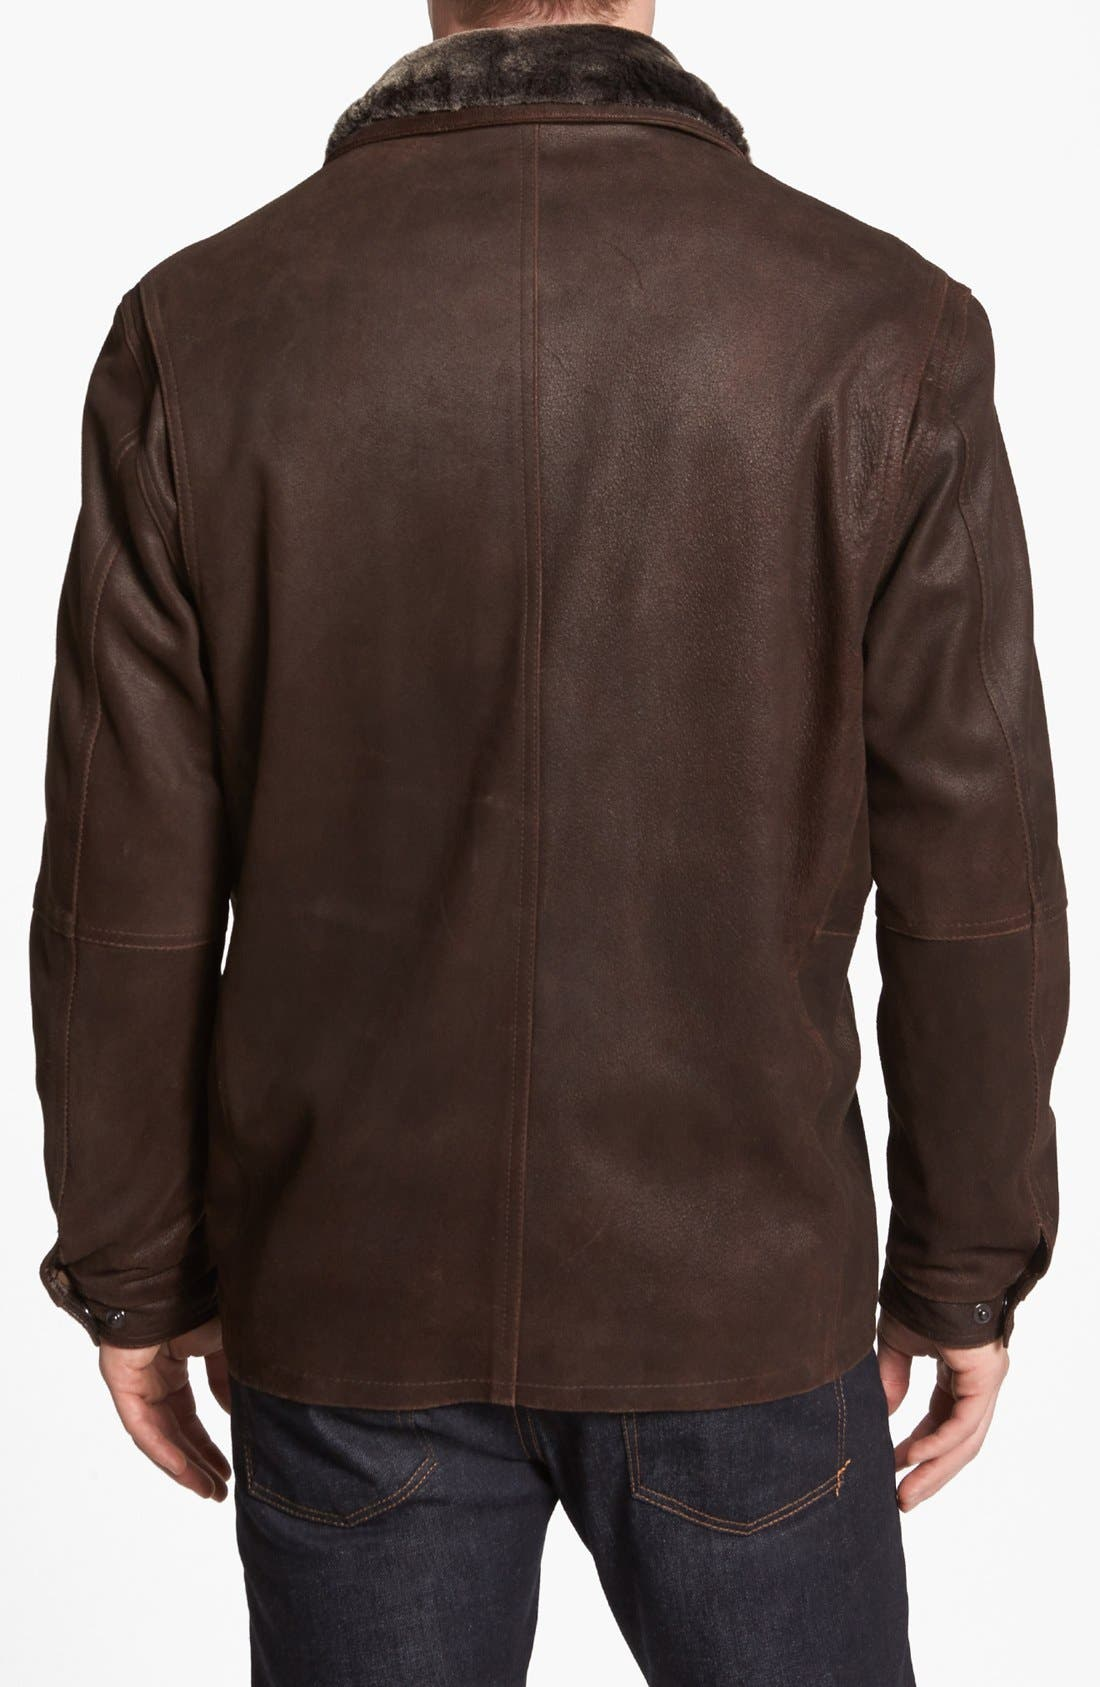 Double Collar Leather Jacket,                             Alternate thumbnail 3, color,                             236